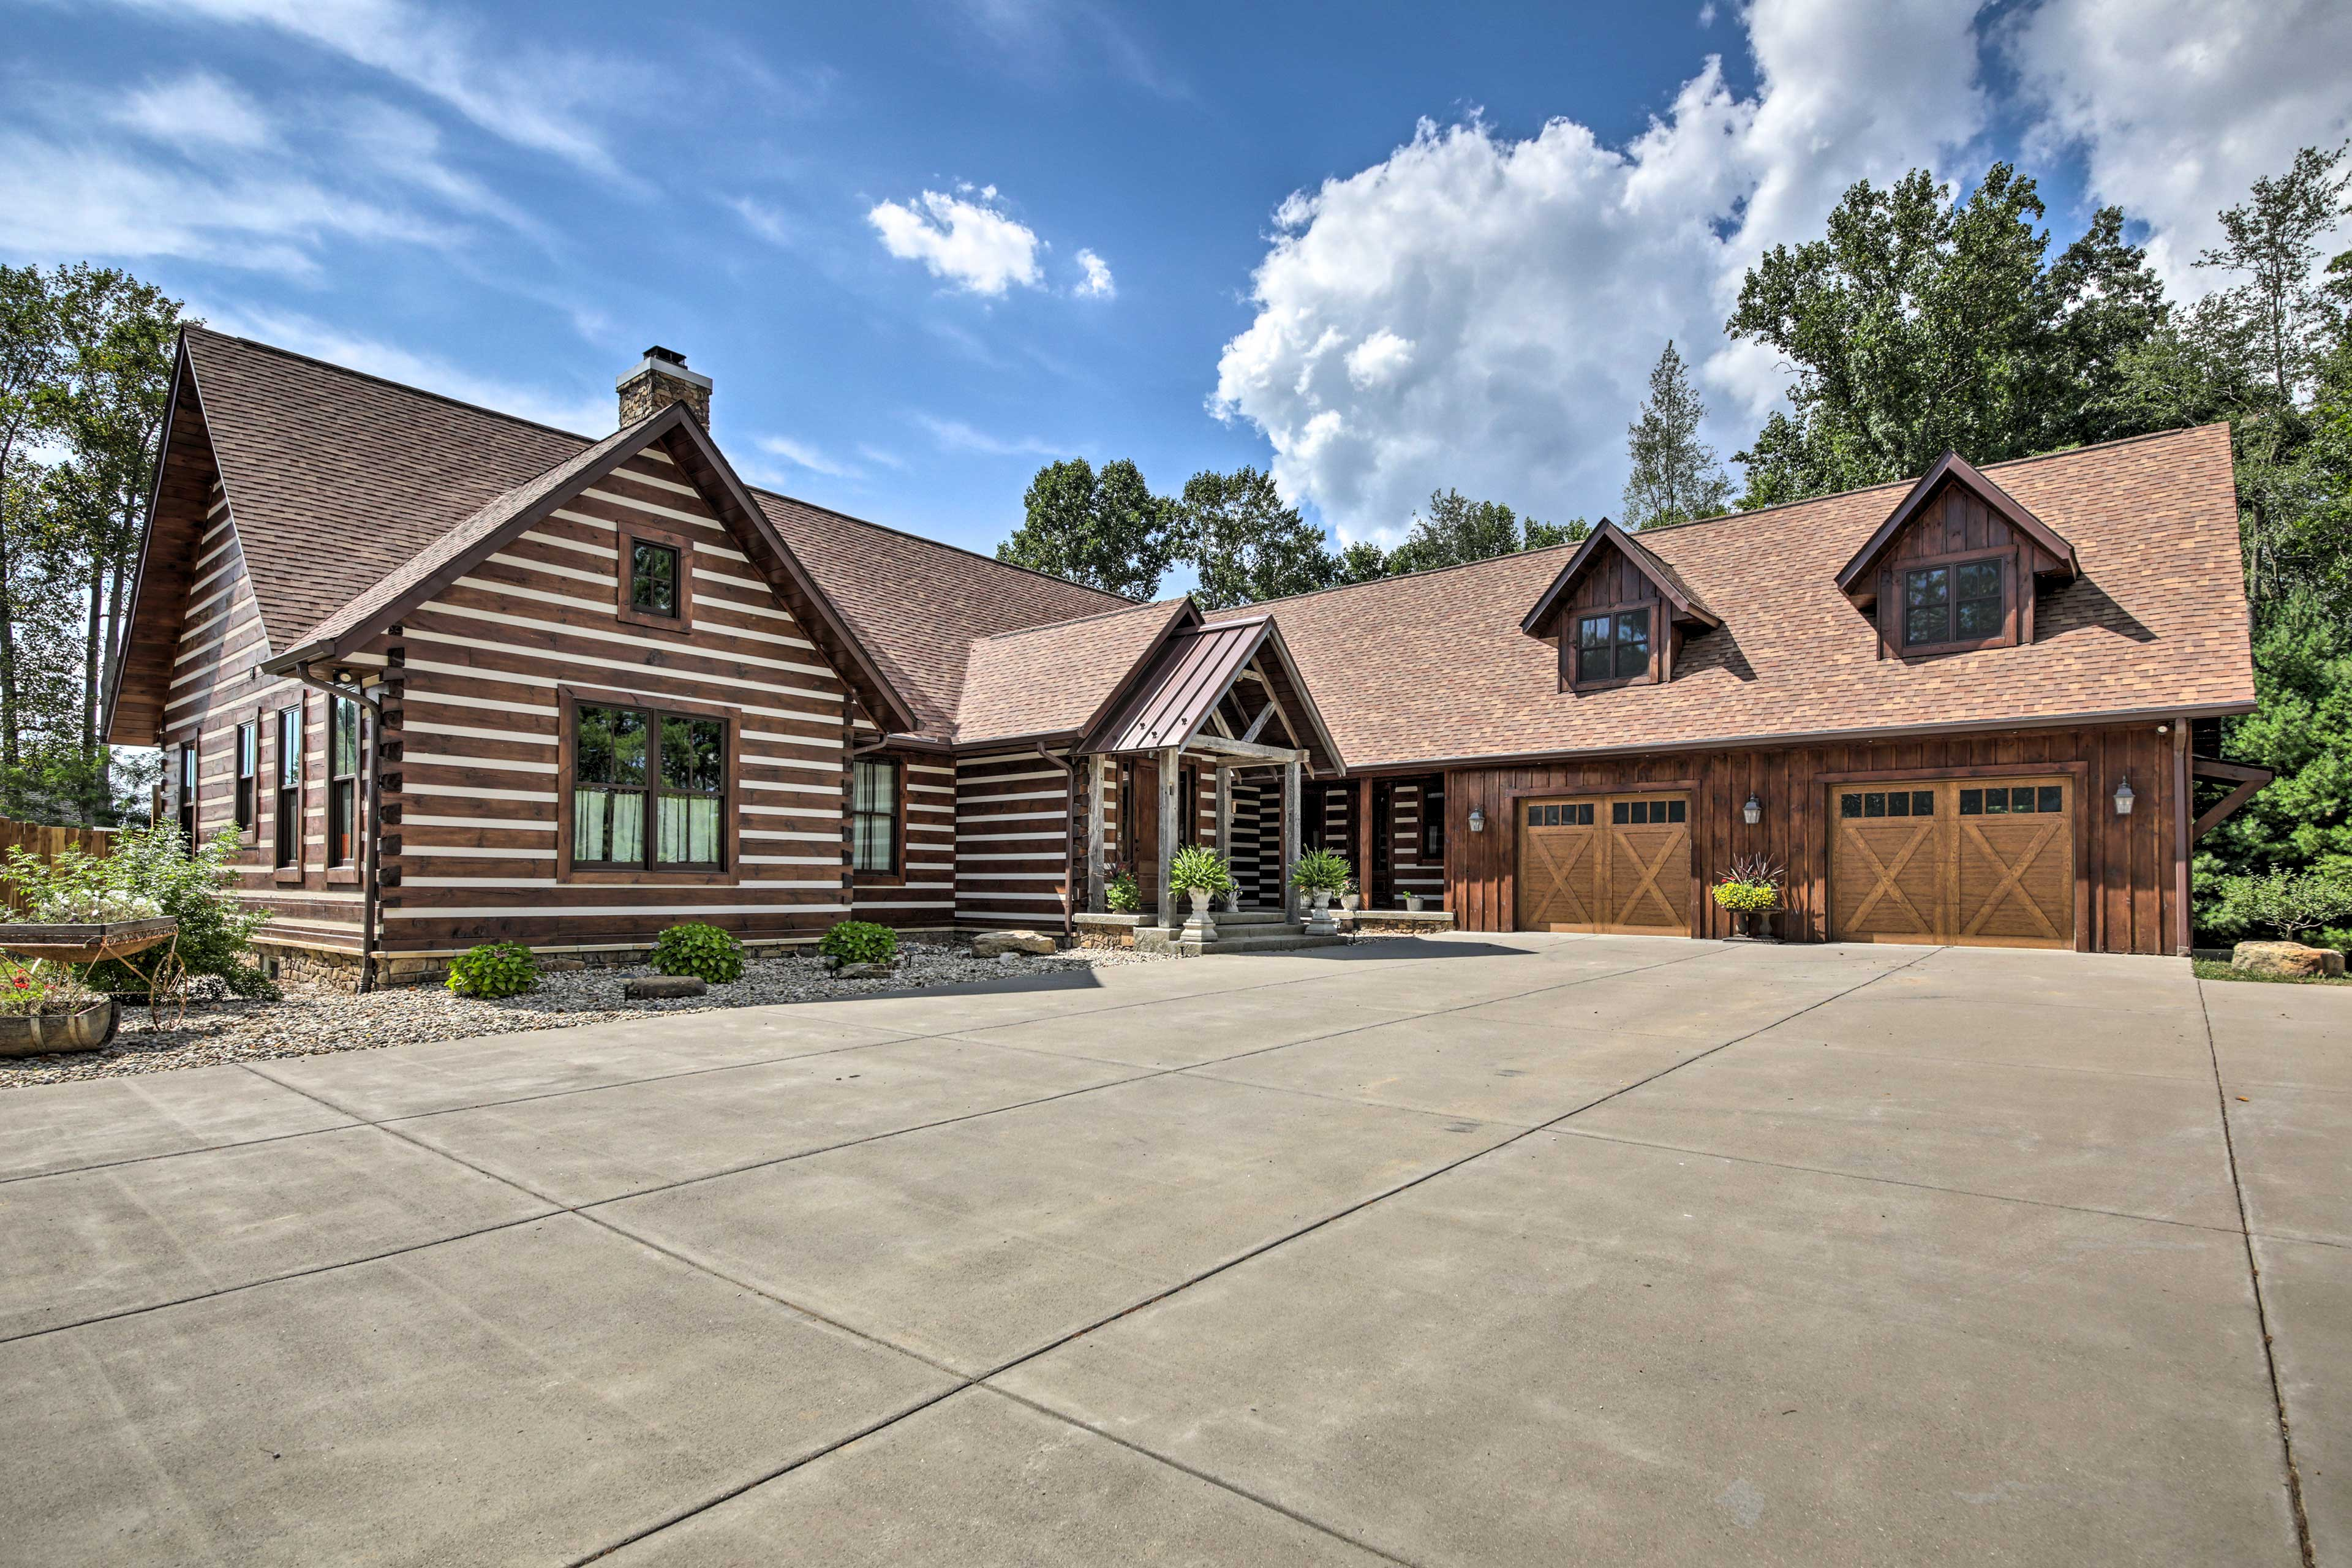 This vacation rental for 4 is just a short drive from campus and Lake Monroe.